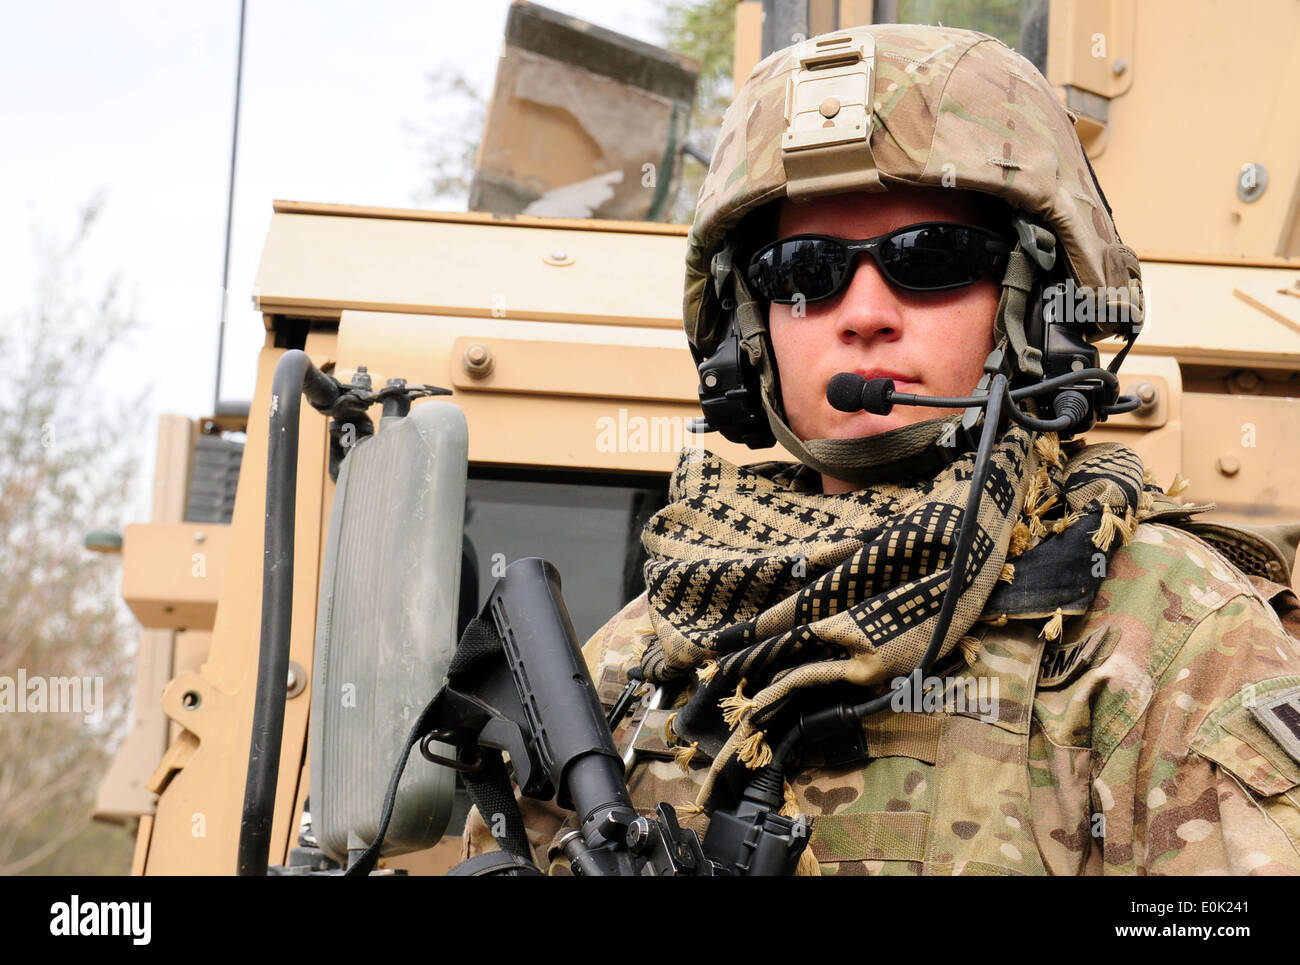 Task Force Spartan 3 soldier Army Spc. Rhesa Schubbe provides security for her team while Afghan National Police officers condu - Stock Image